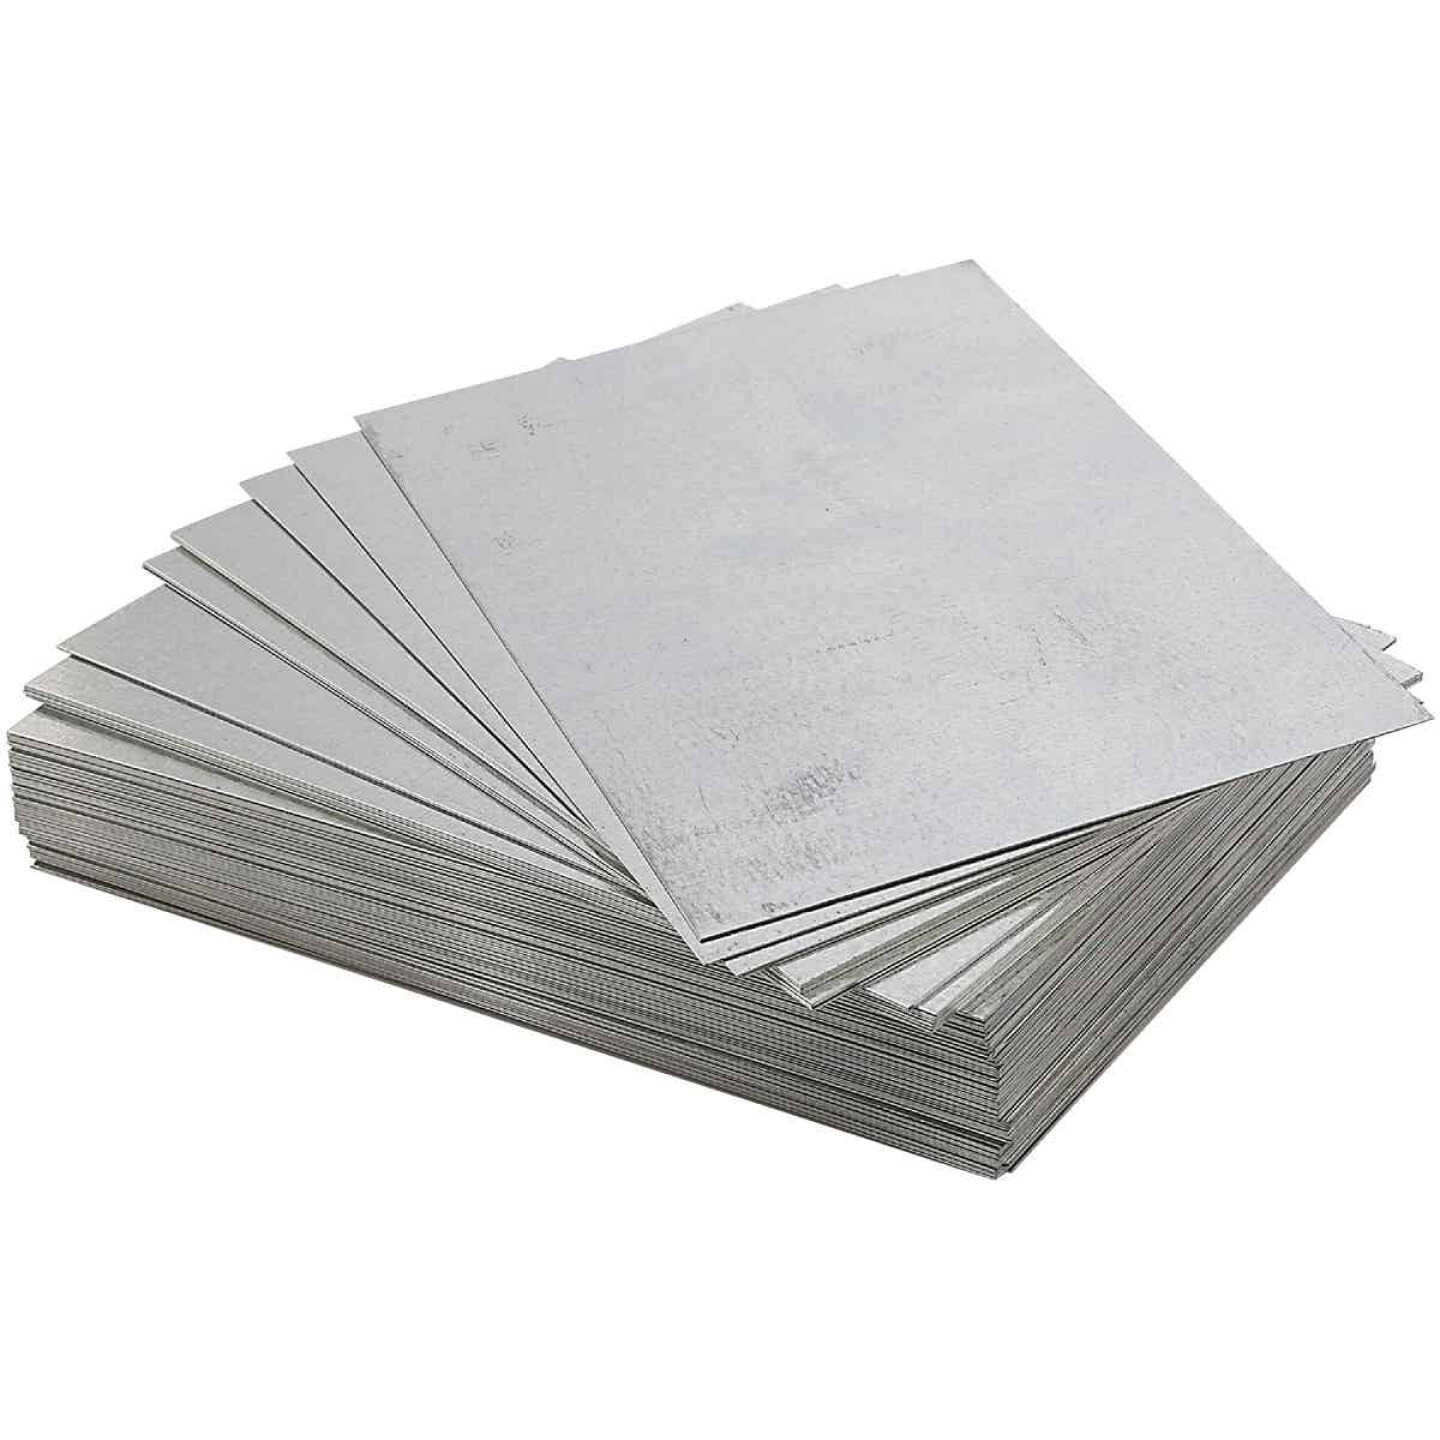 NorWesco 8 In. x 12 In. Mill Galvanized Step Flashing Shingle Image 1